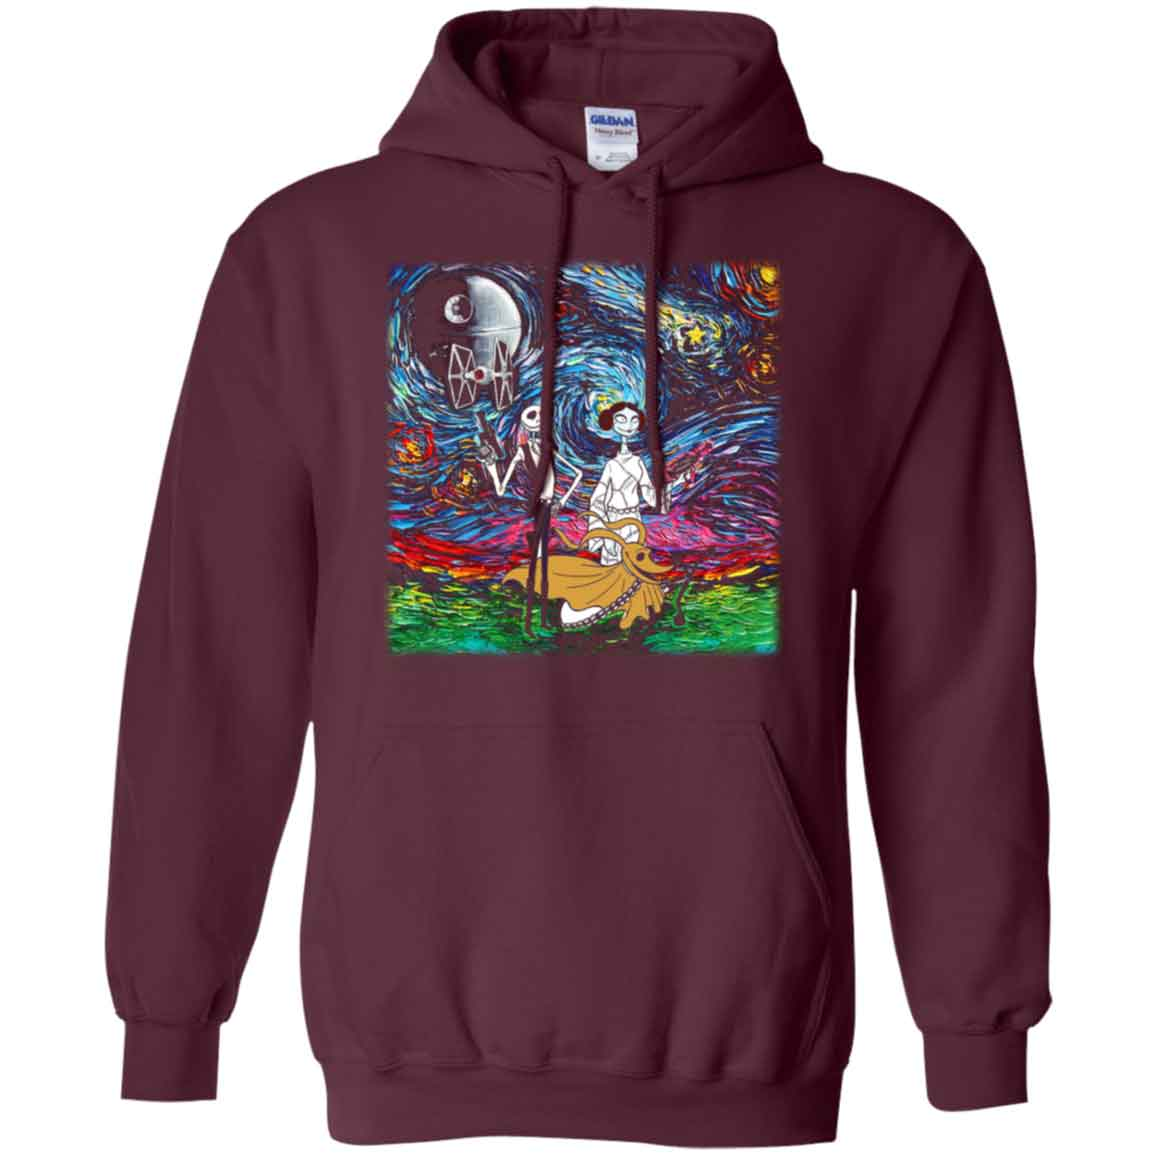 Van Gogh The Nightmare Before Christmas Star Wars Shirts Hoodies ...